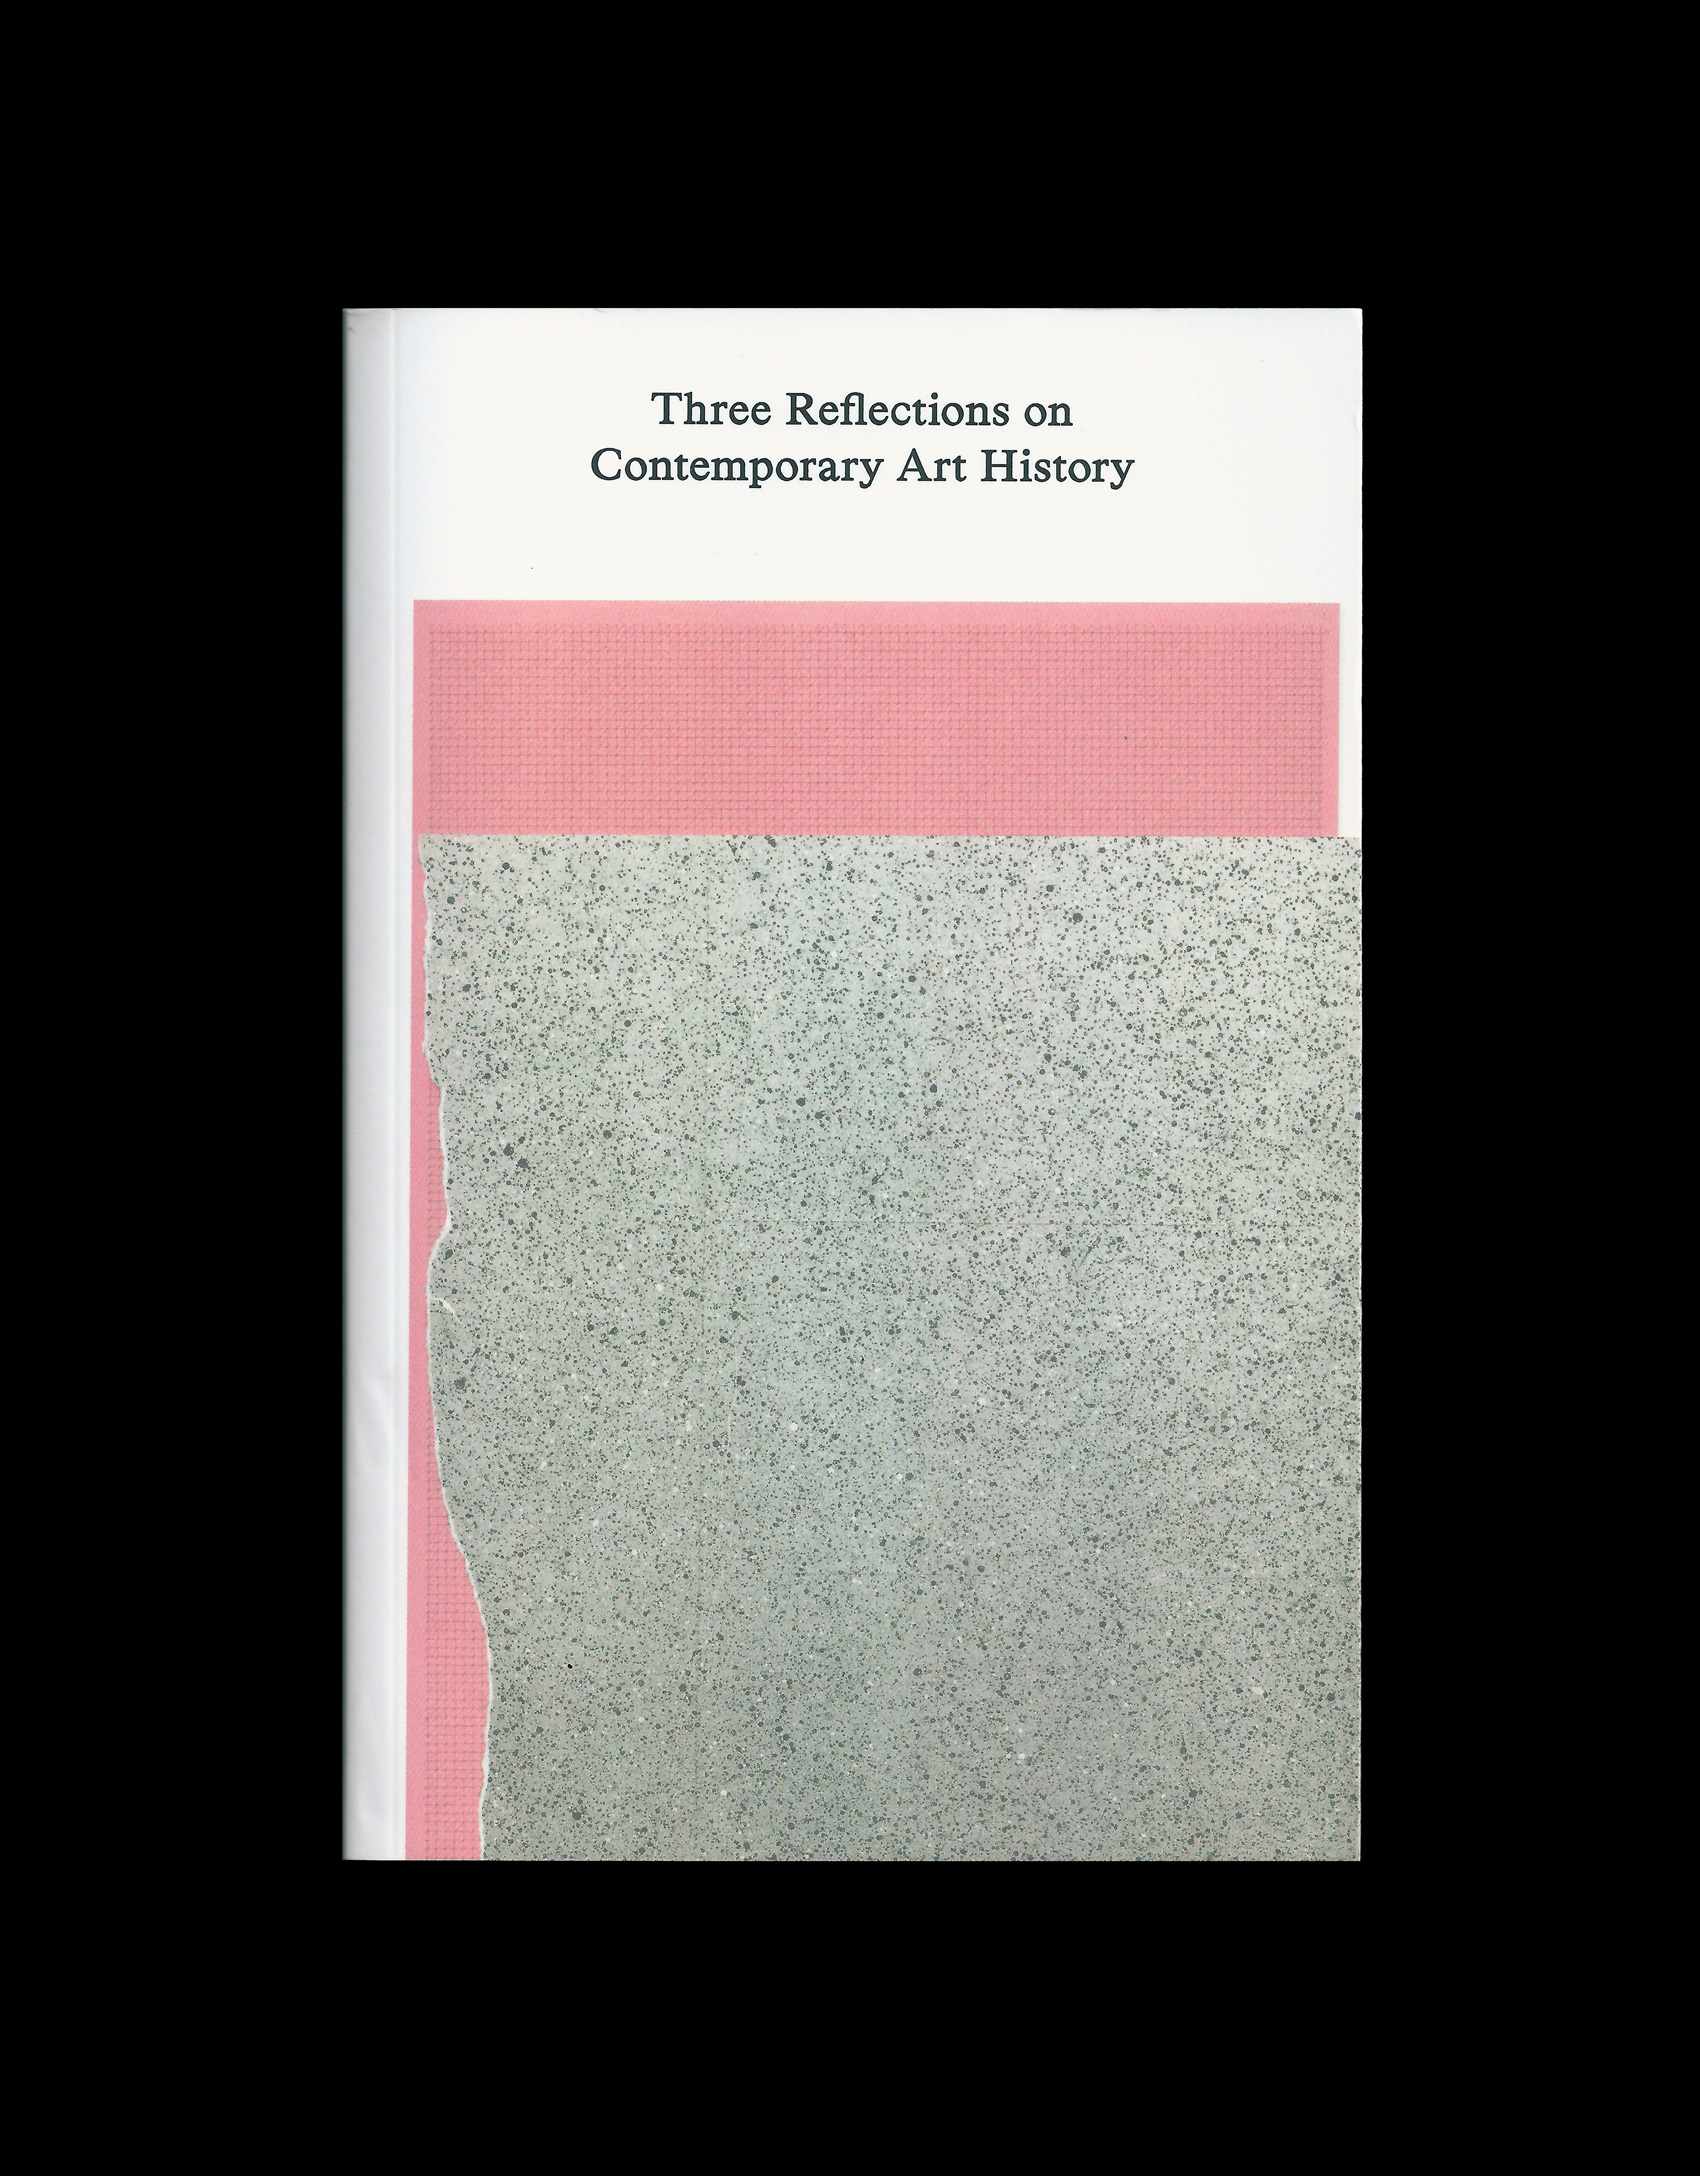 discipline contemporary art history three reflections on contemporary art history